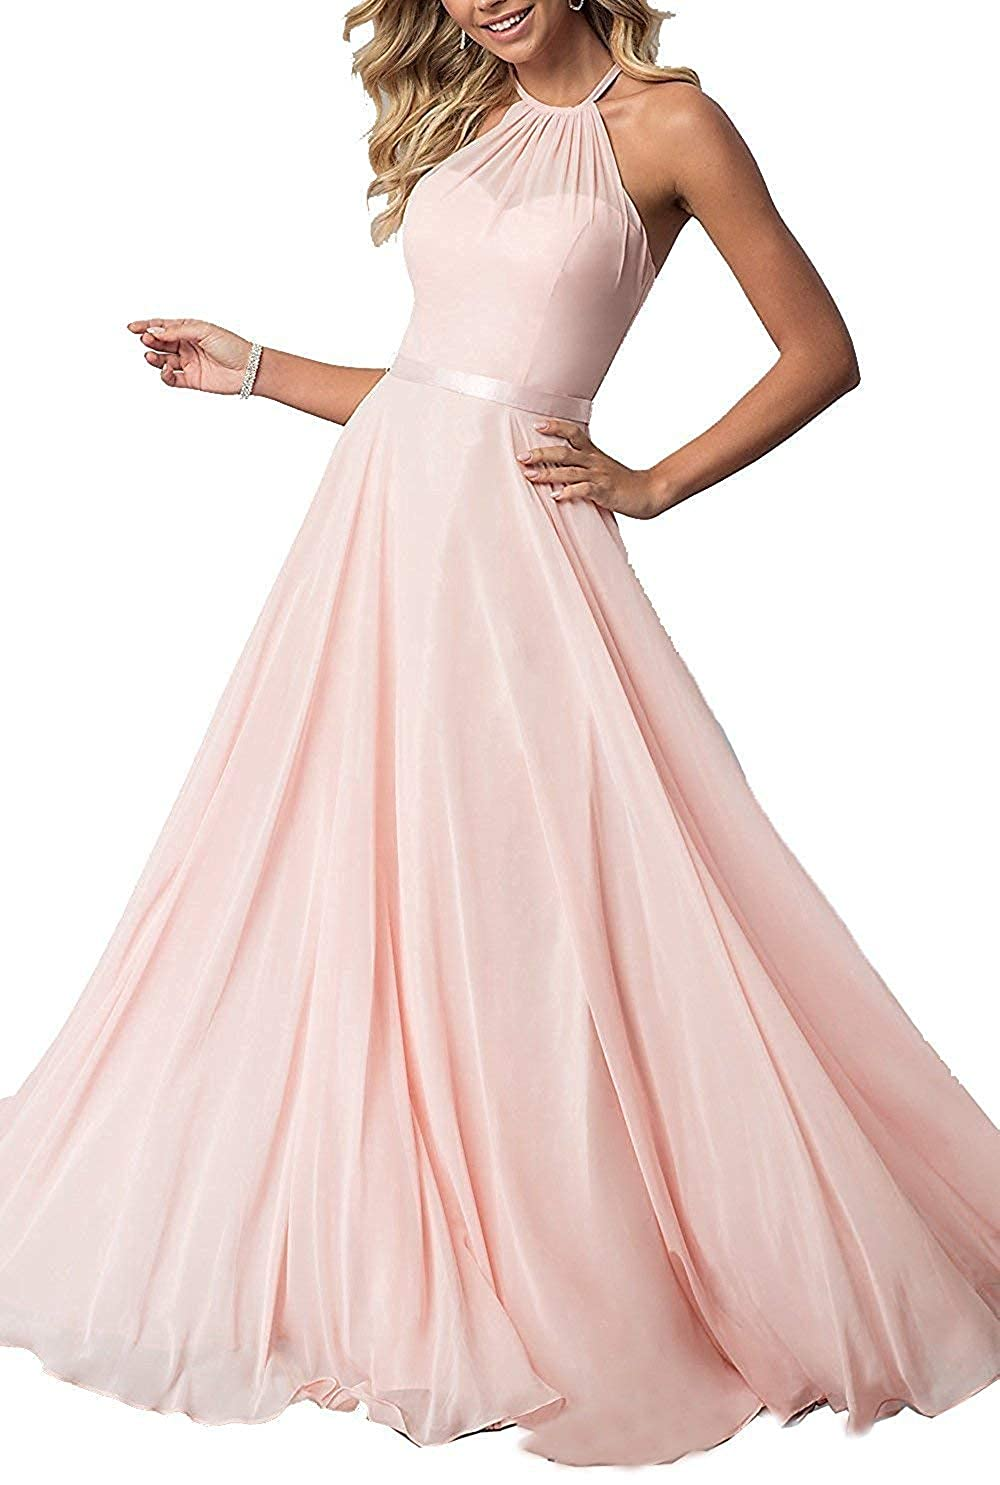 Baby Pink ROMOO Sexy Halter Long Bridesmaid Dresses Open Back Aline Formal Evening Party Gowns